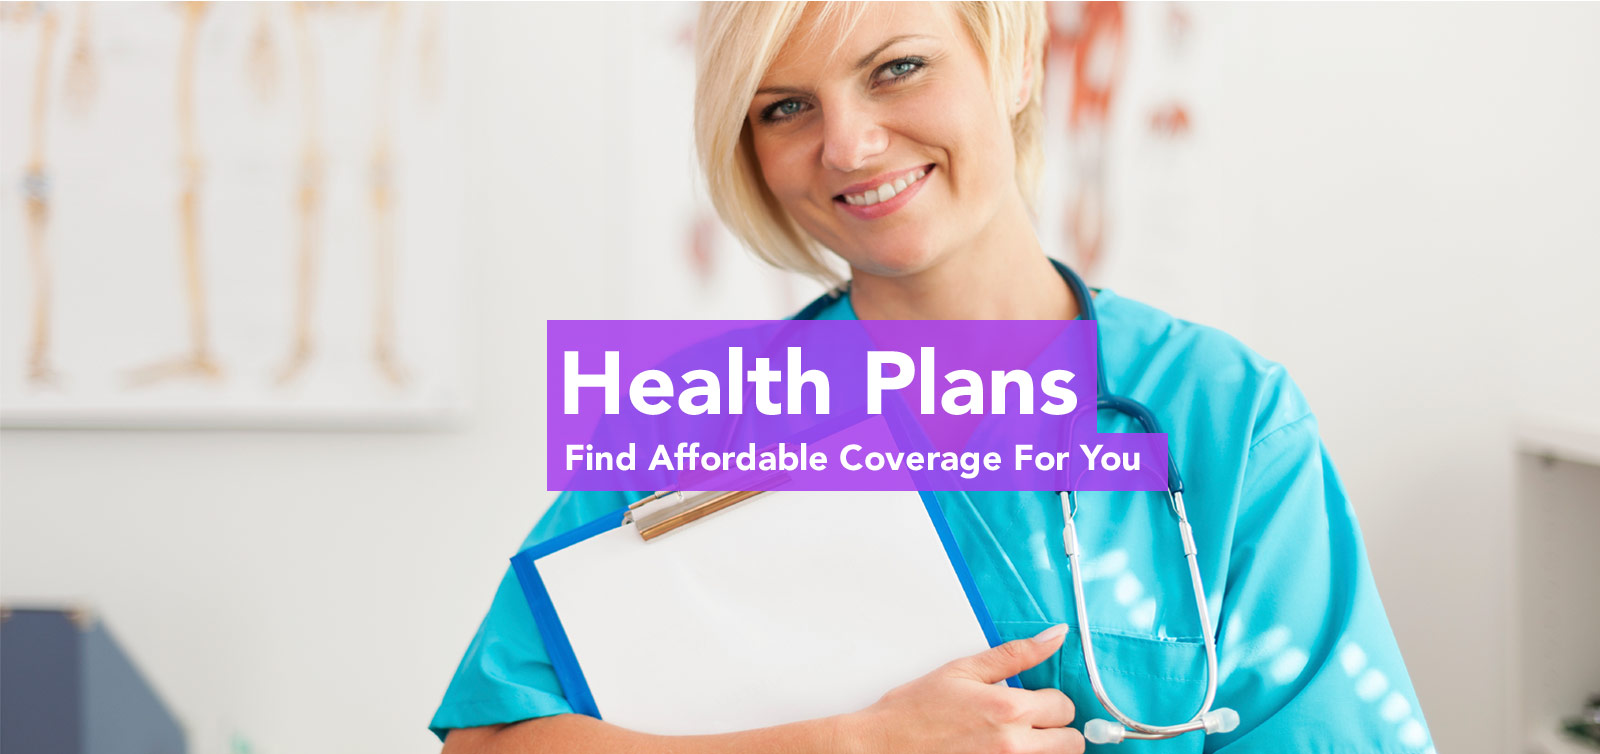 Find Affordable Coverage For You